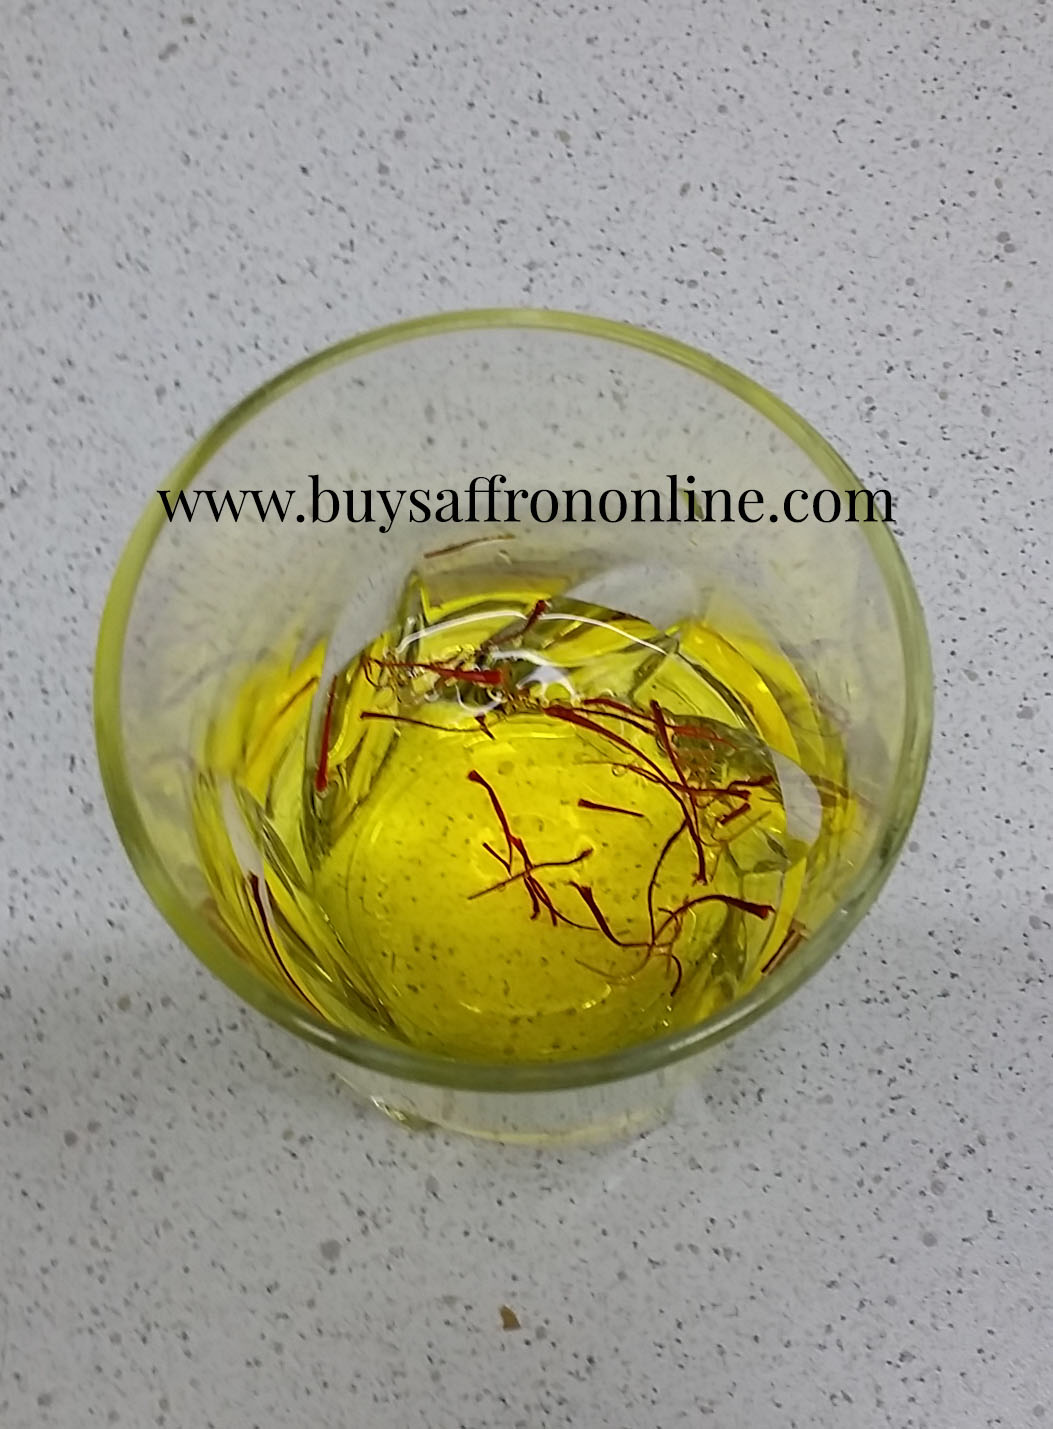 Saffron From Buy Saffron Online Vs Other Saffrons